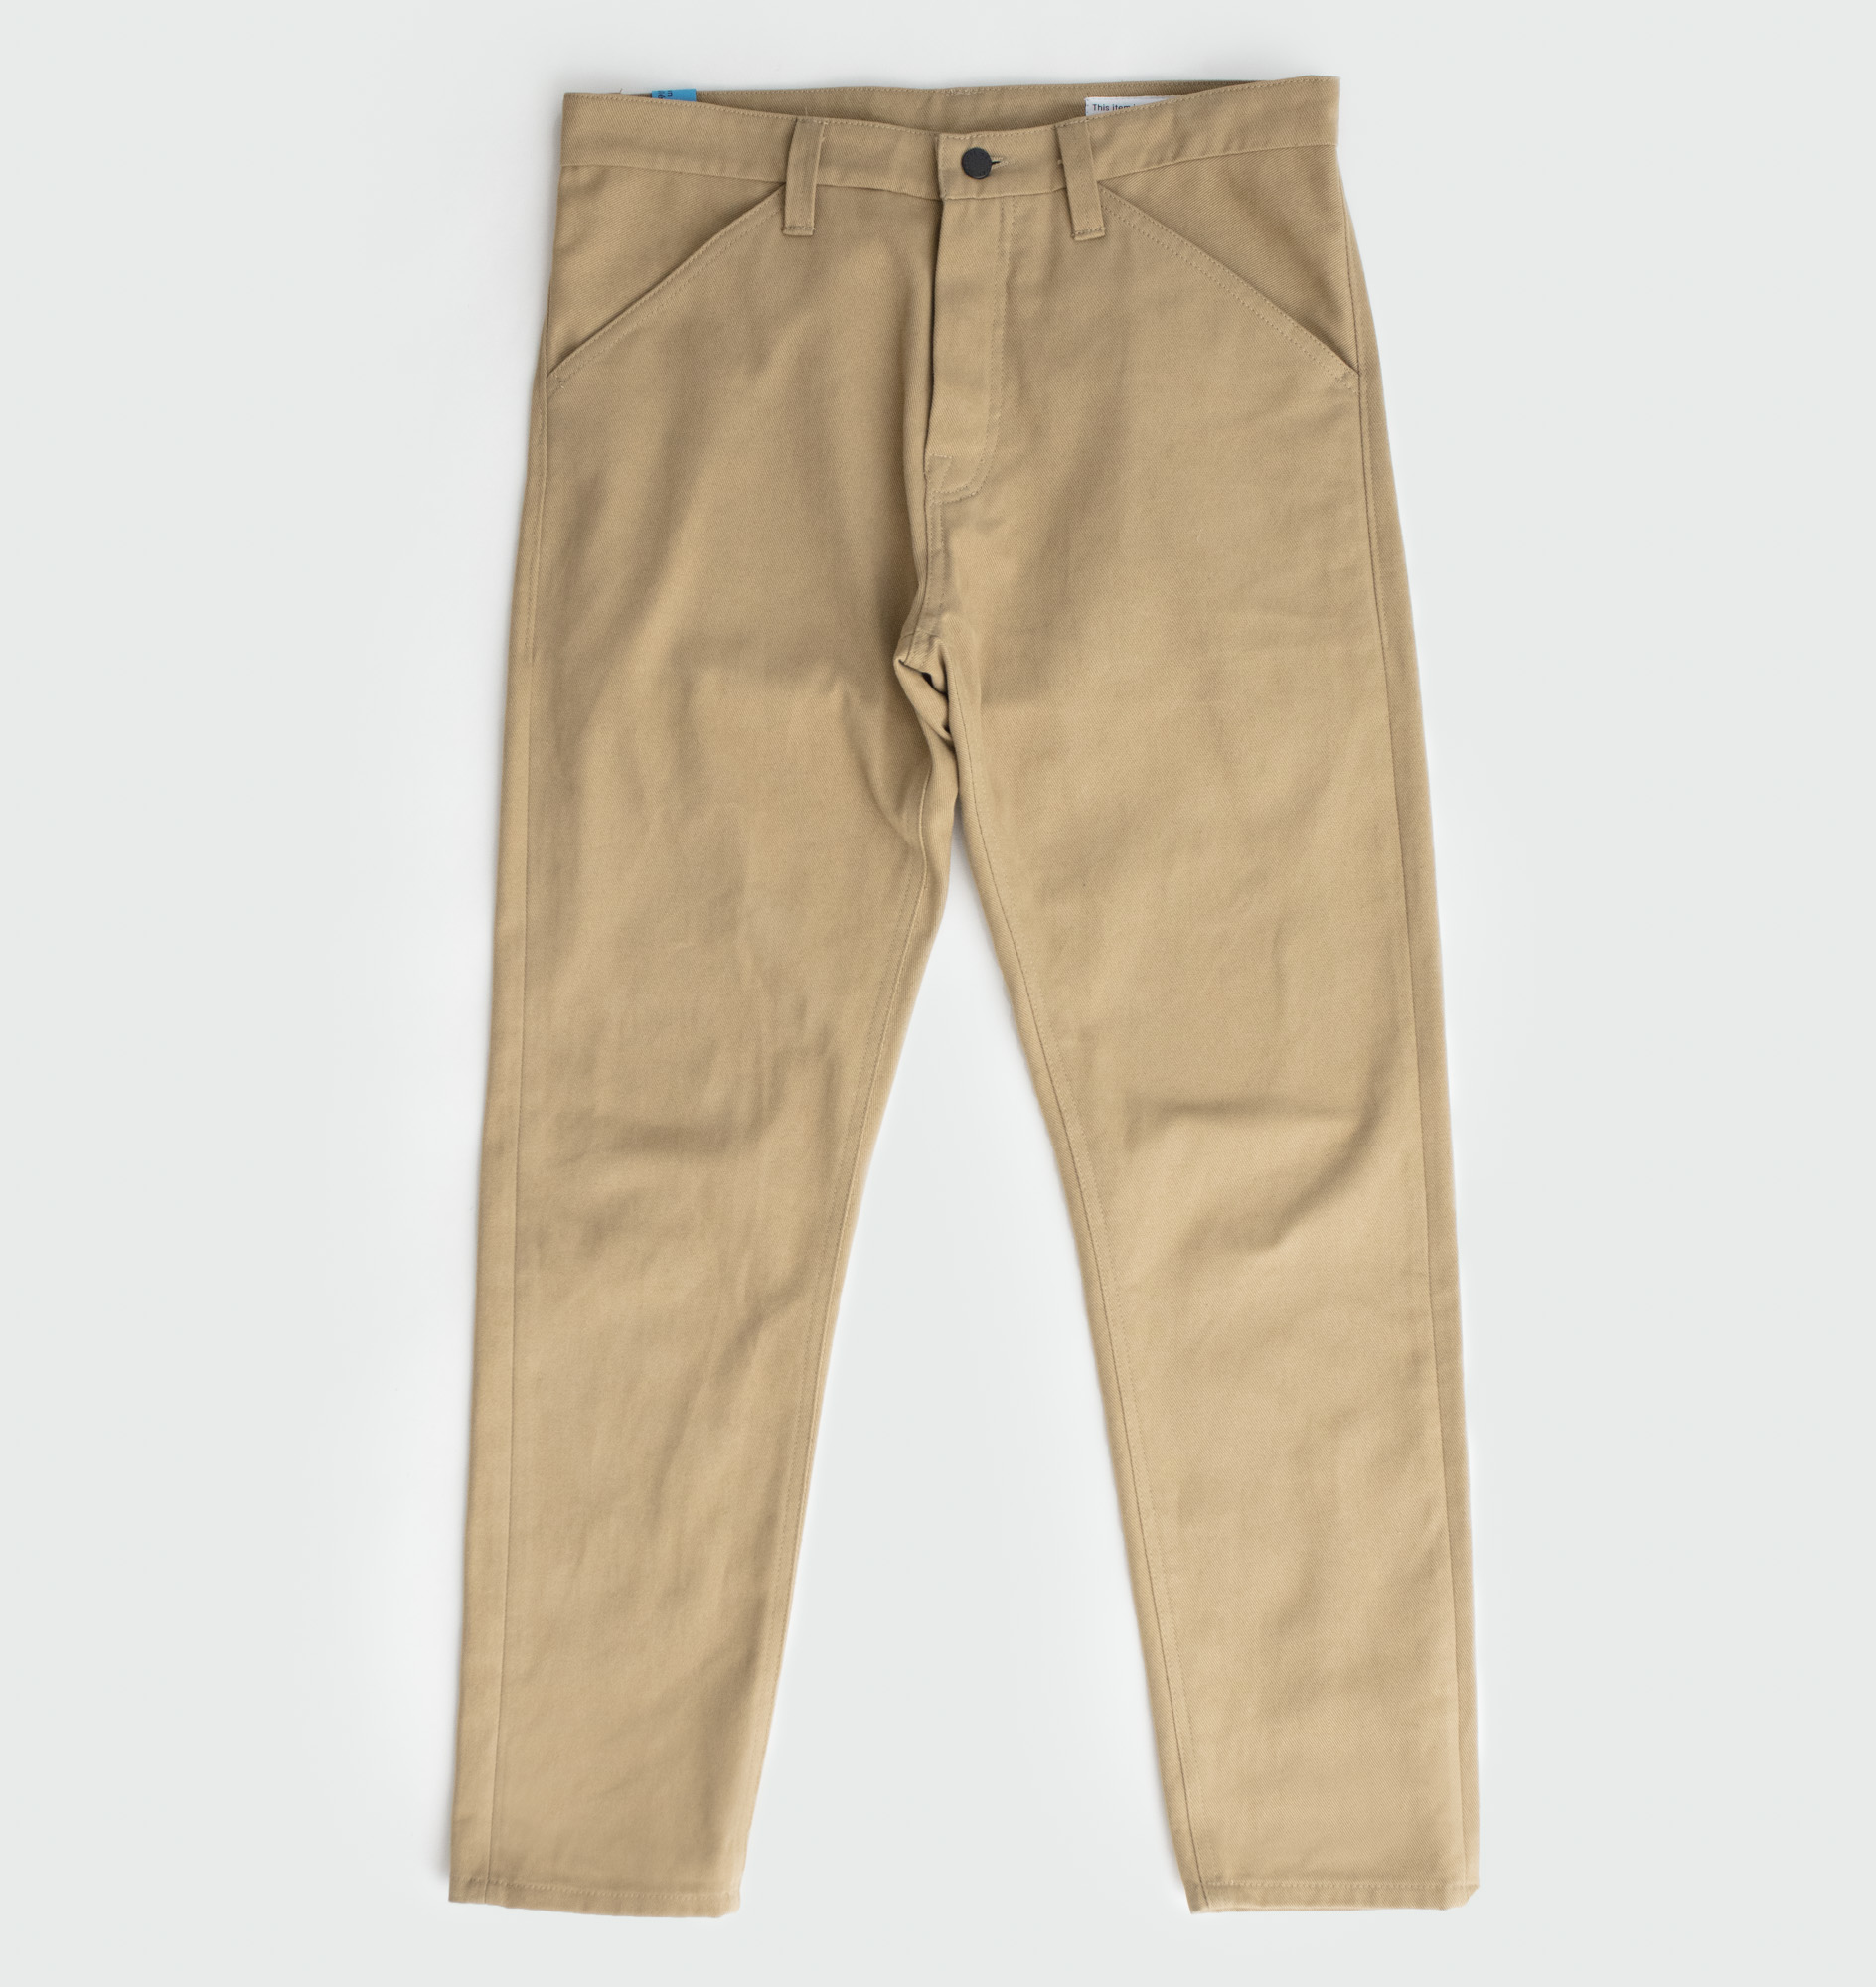 Pants or trousers by Artikel København, produced in Copenhagen